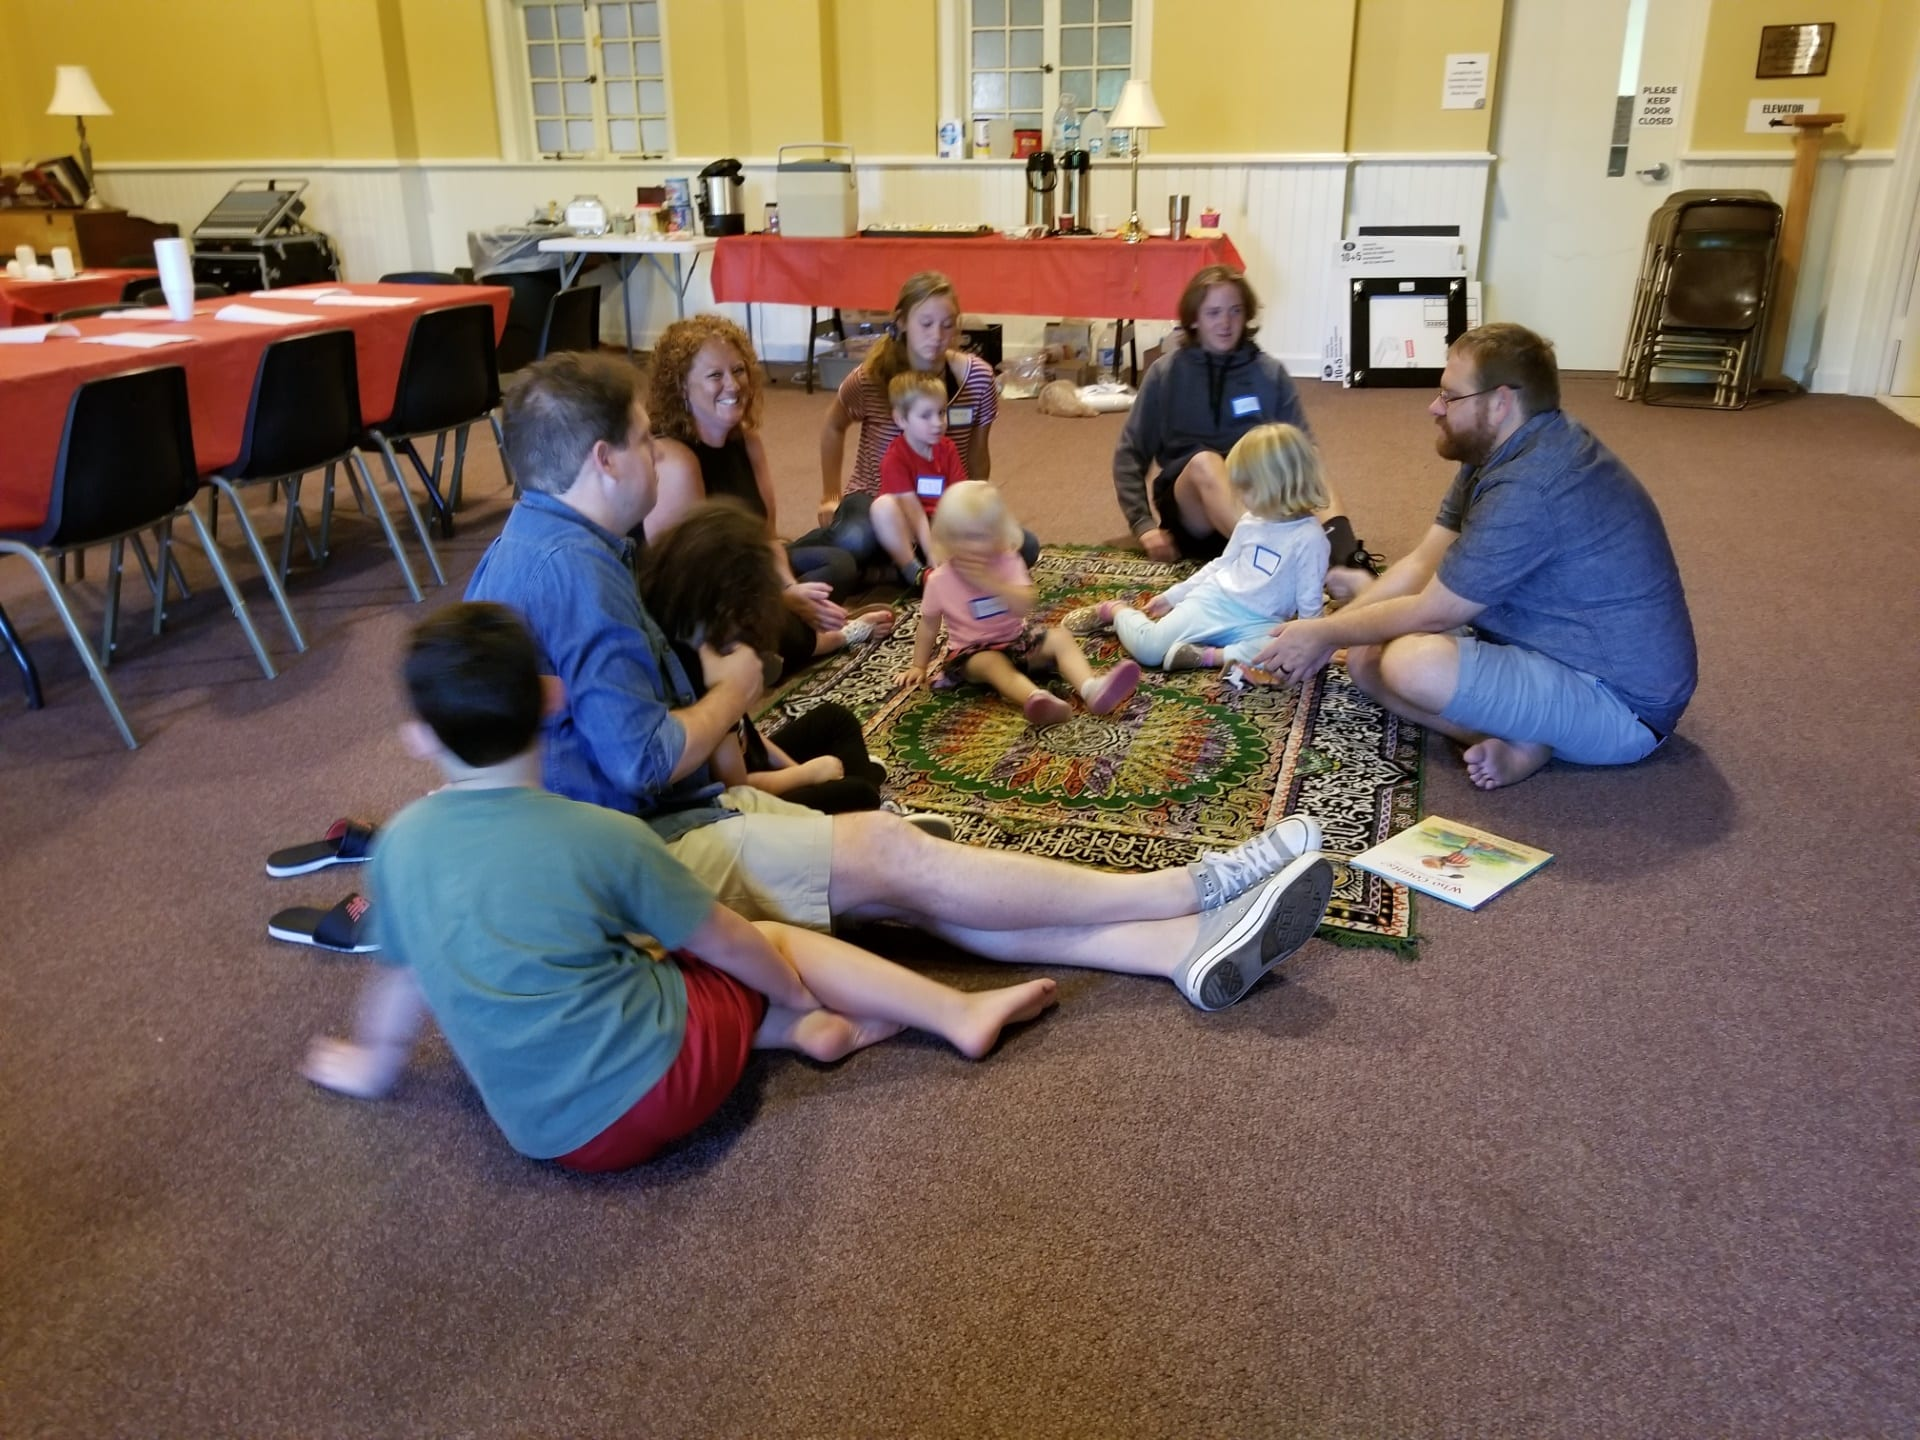 vacation bible school 20190727 094347 - St. Philip's Episcopal Church